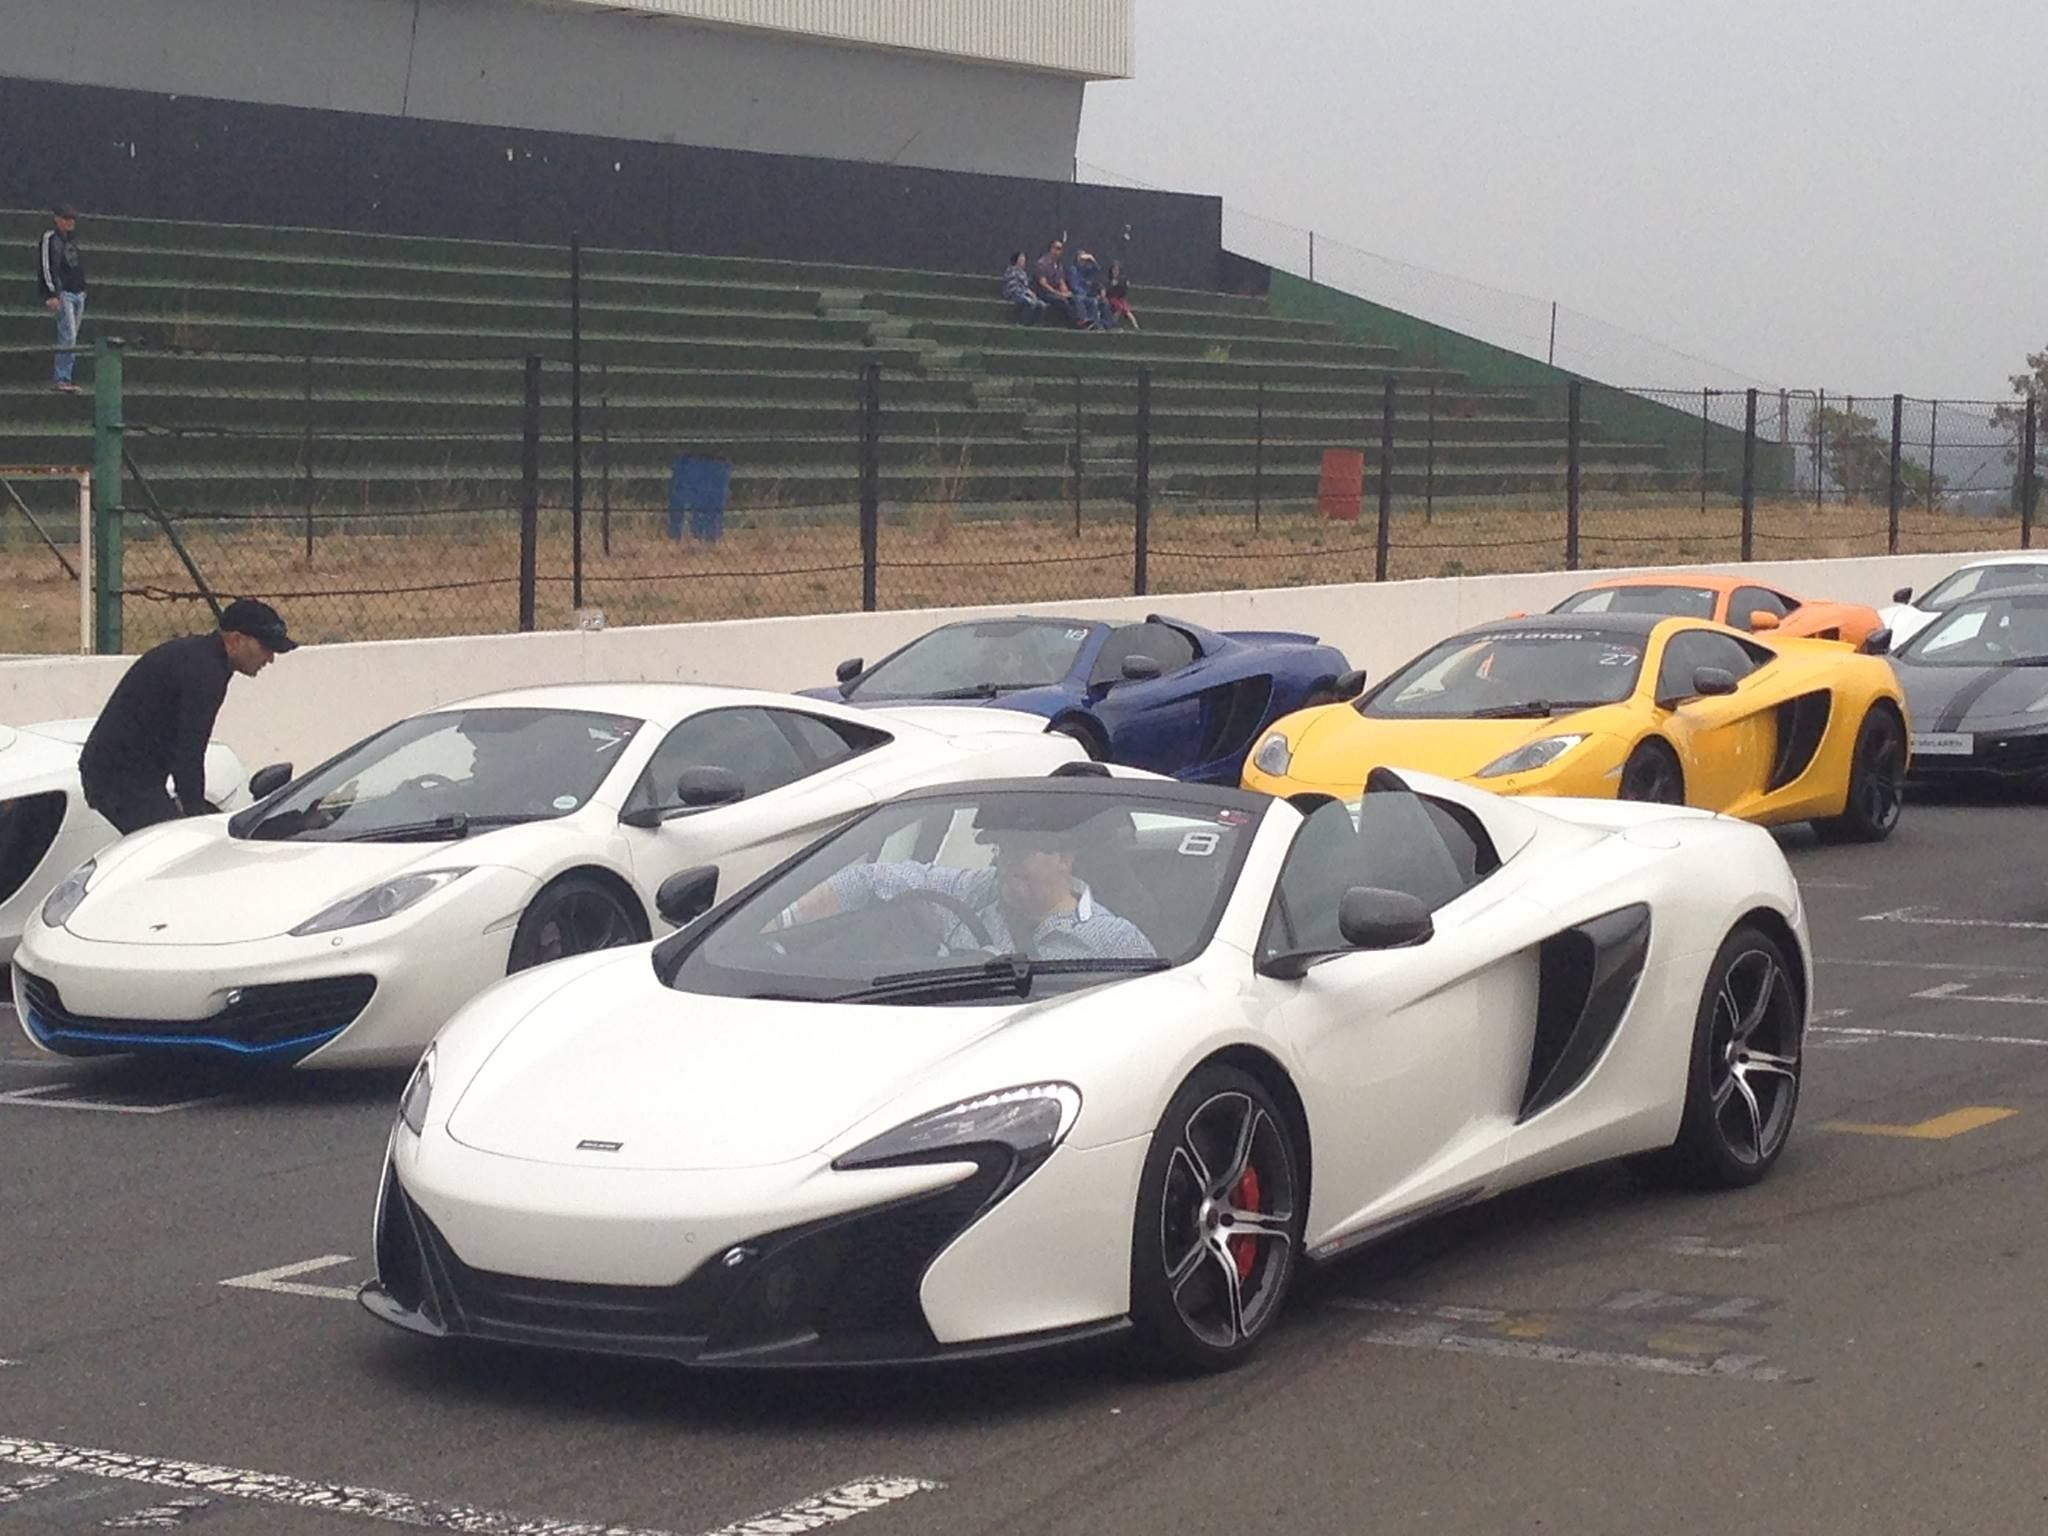 More from the Mclaren race day